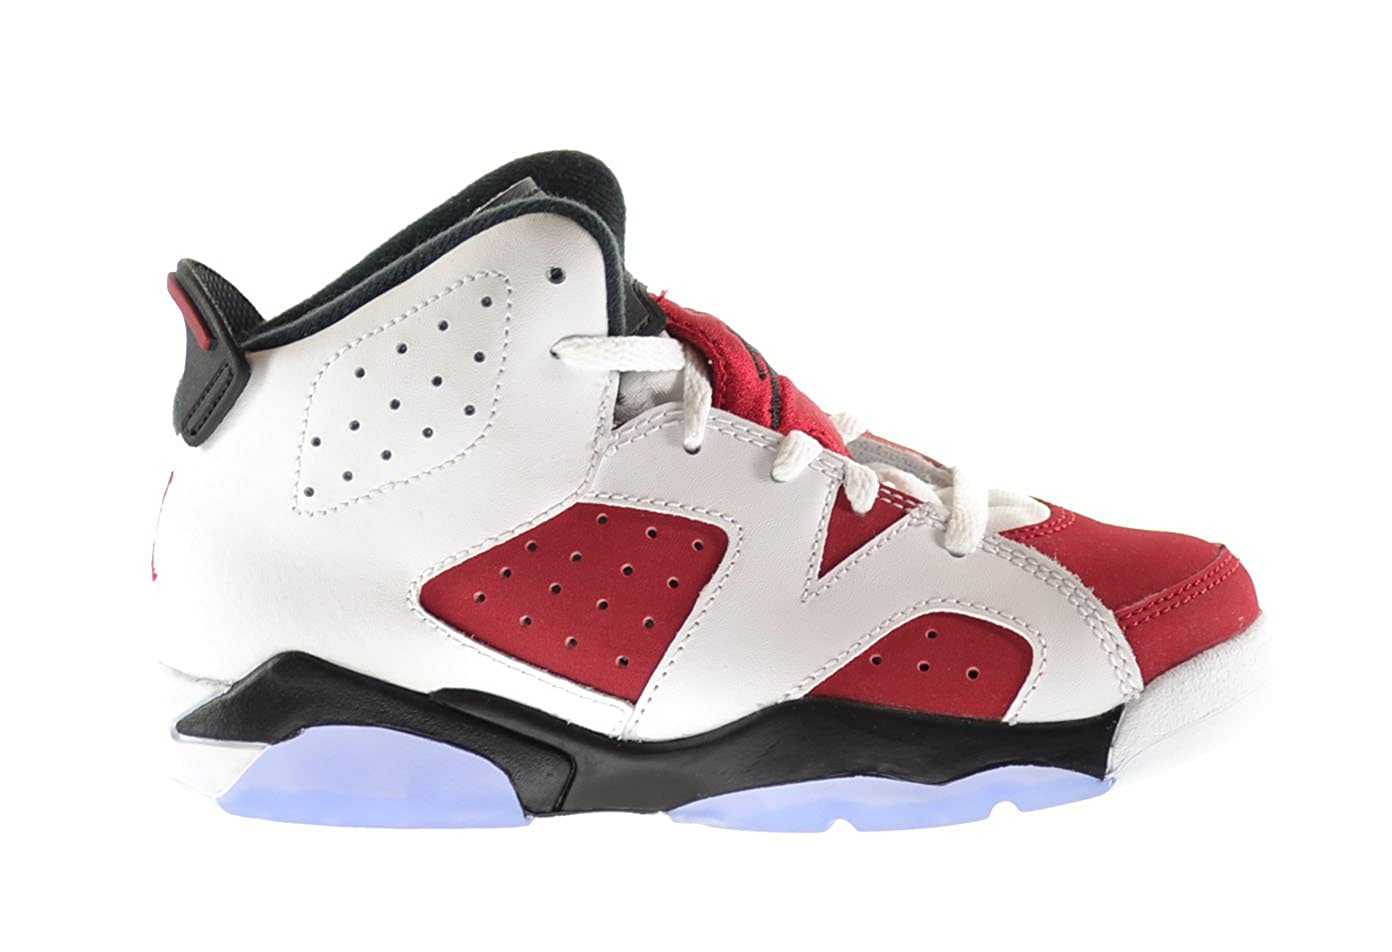 wholesale dealer be744 9bd85 Amazon.com   Jordan Air Retro 6 BP Little Kids Shoes White Carmine-Black  384666-160 (2.5 M US)   Basketball